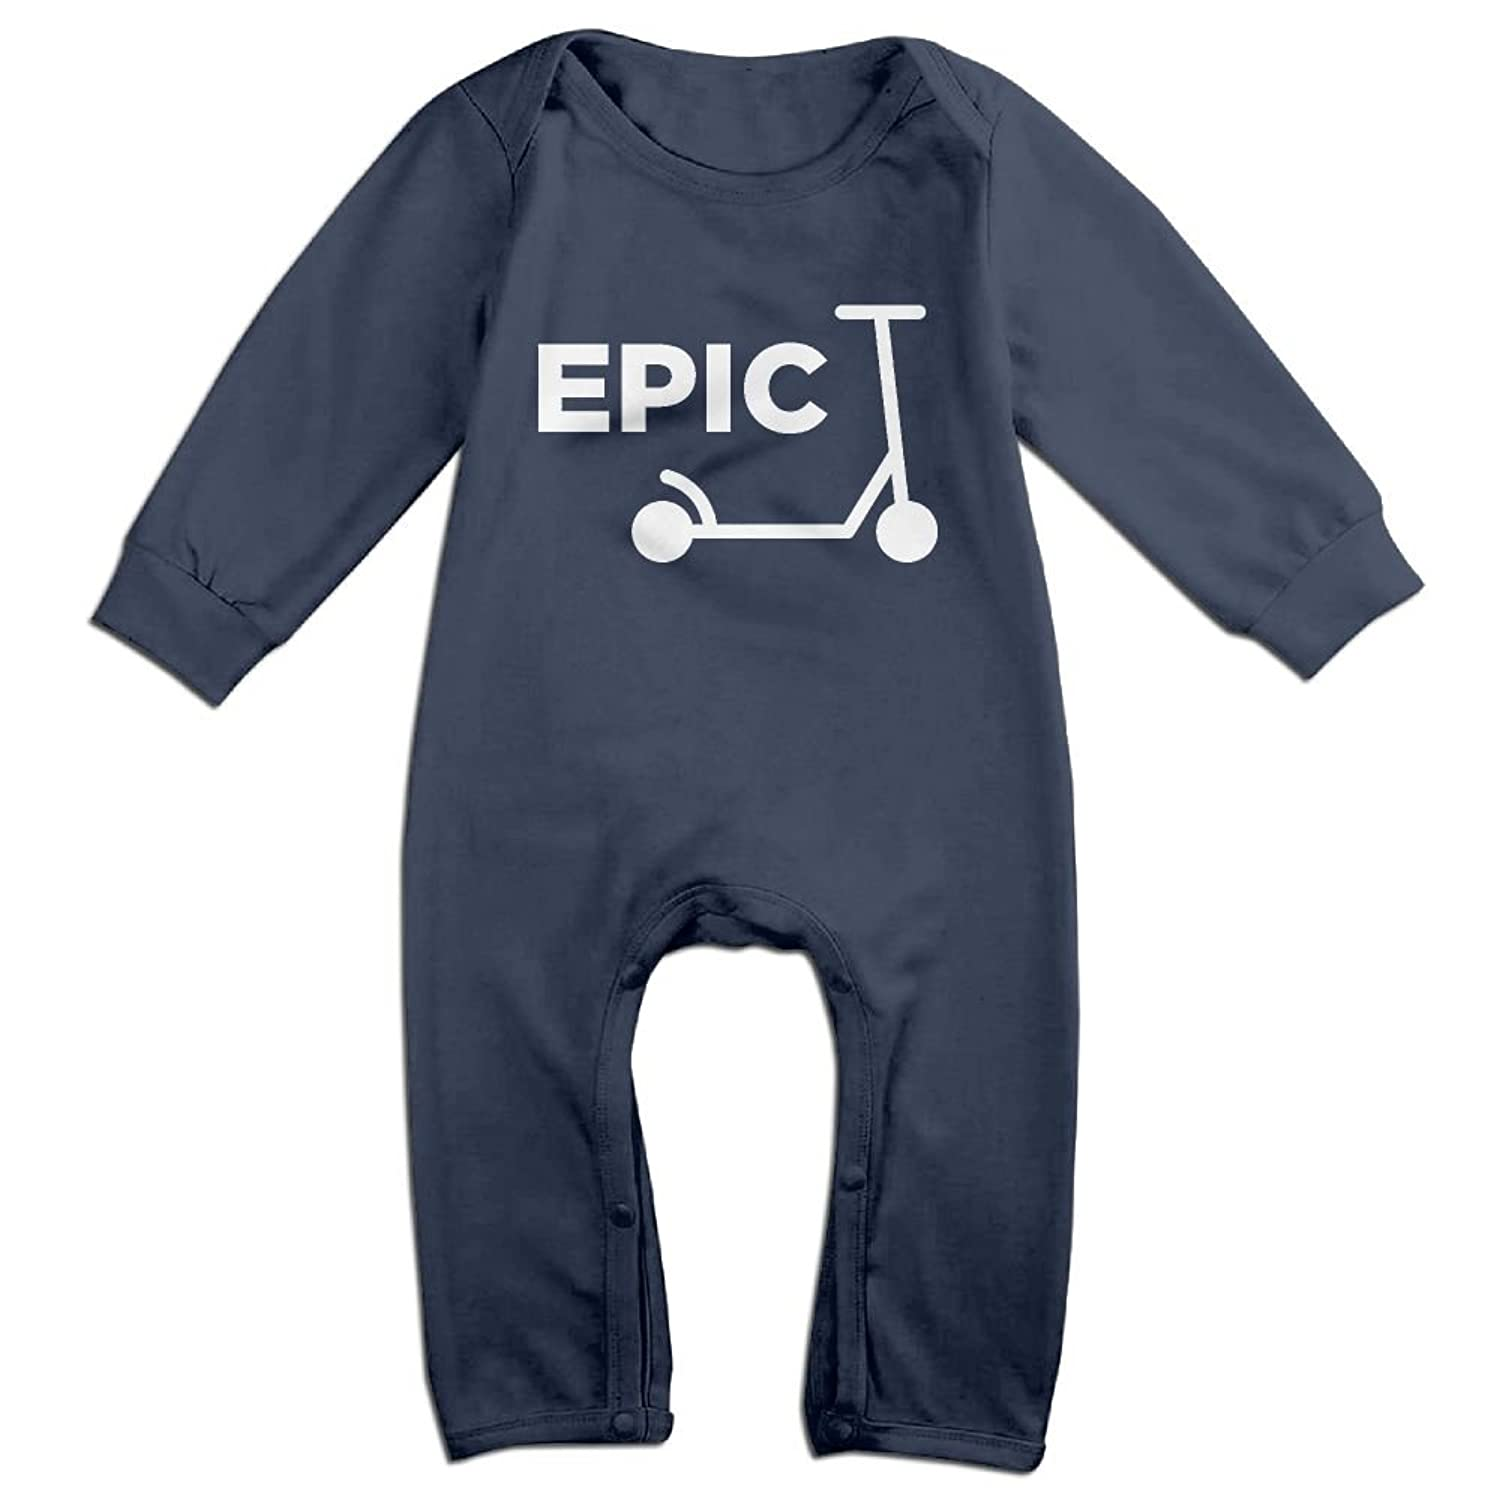 Scooter Epic Infant Romper Jumpsuit Romper Clothing Navy